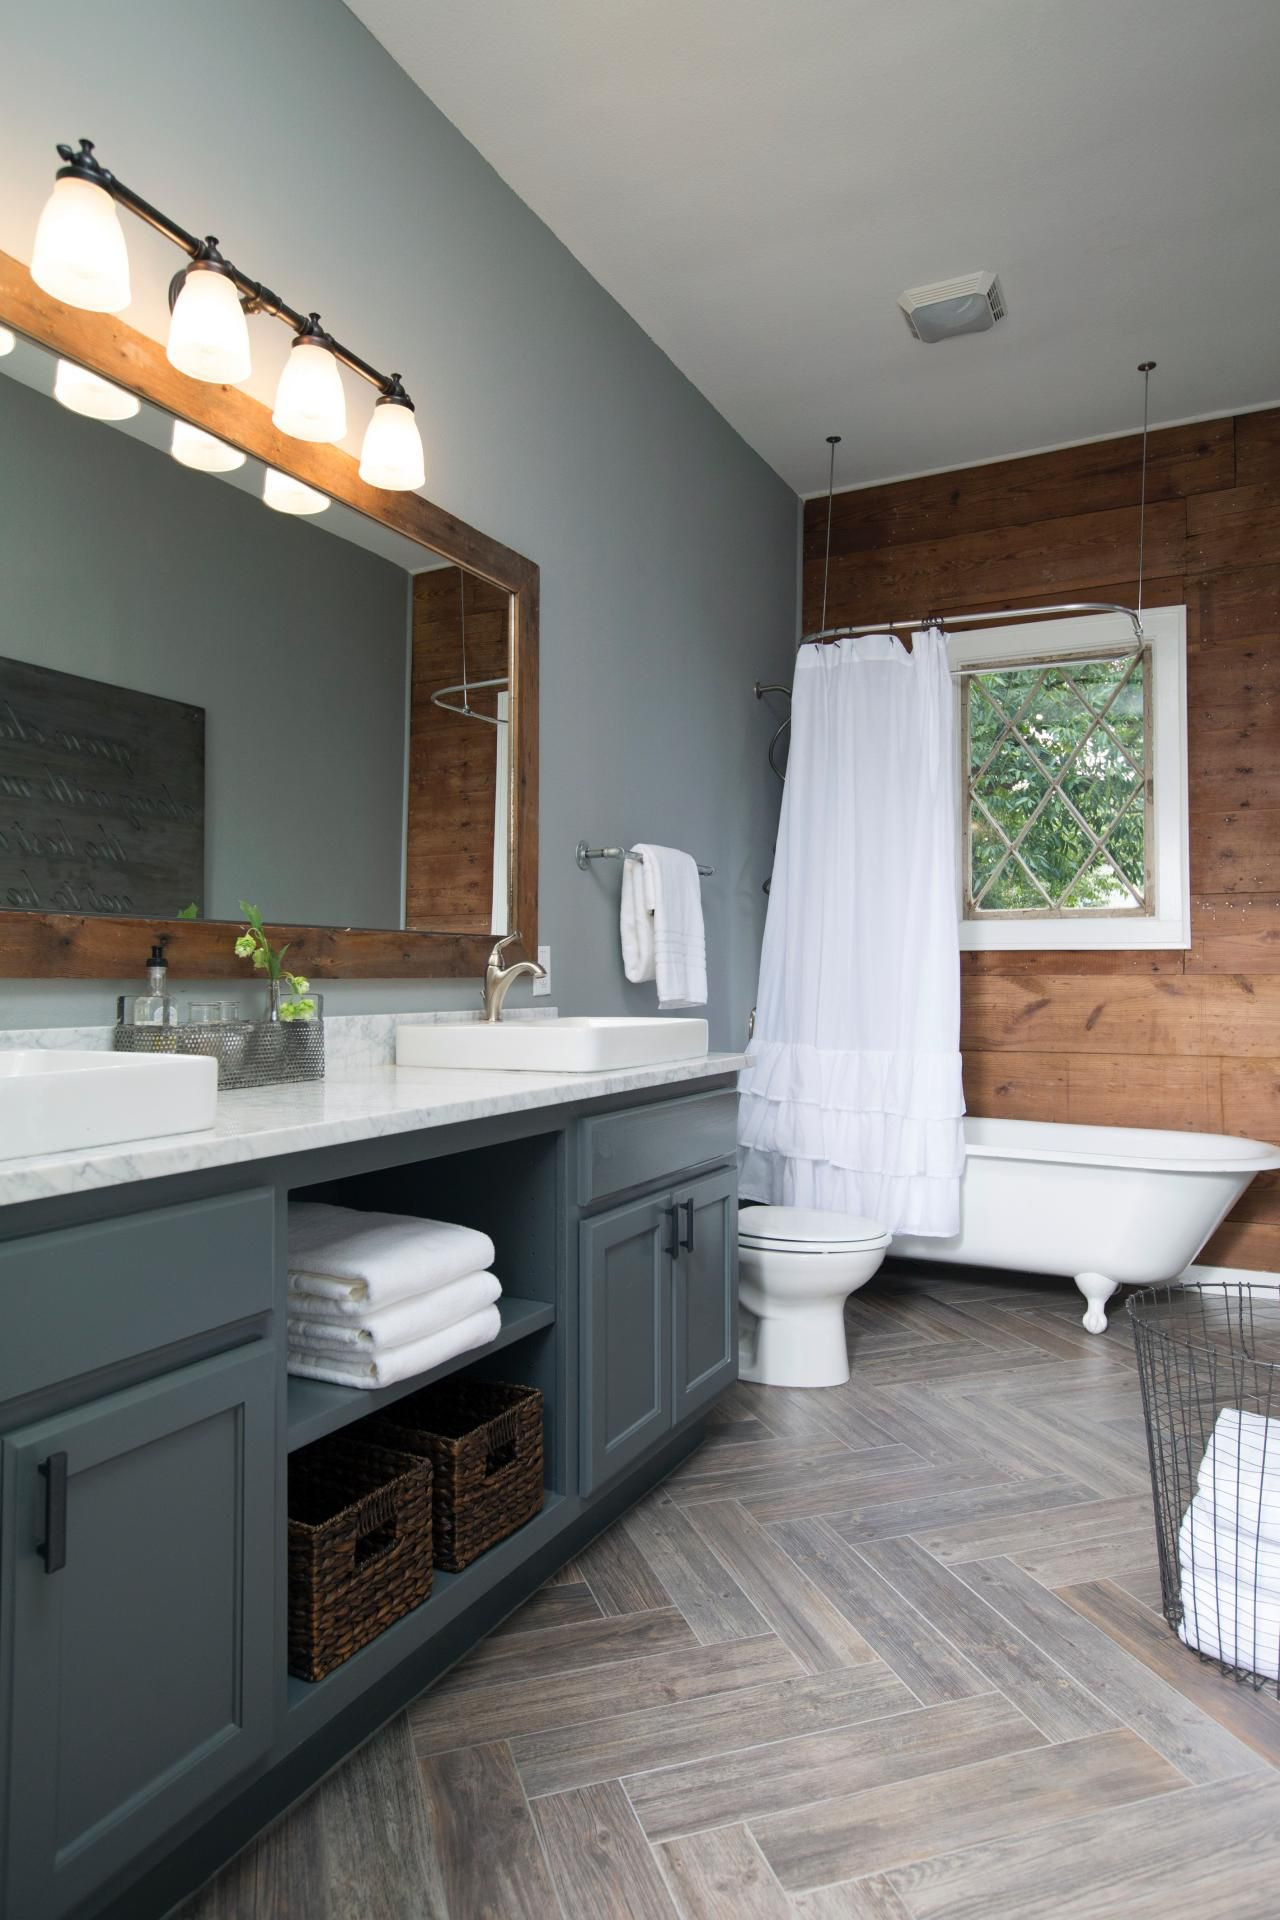 joanna gaines hardwood floor colors of decorating with shiplap ideas from hgtvs fixer upper around the throughout chip and joanna gaines decked out this master bathroom with new gray paint and a shiplap accent wall